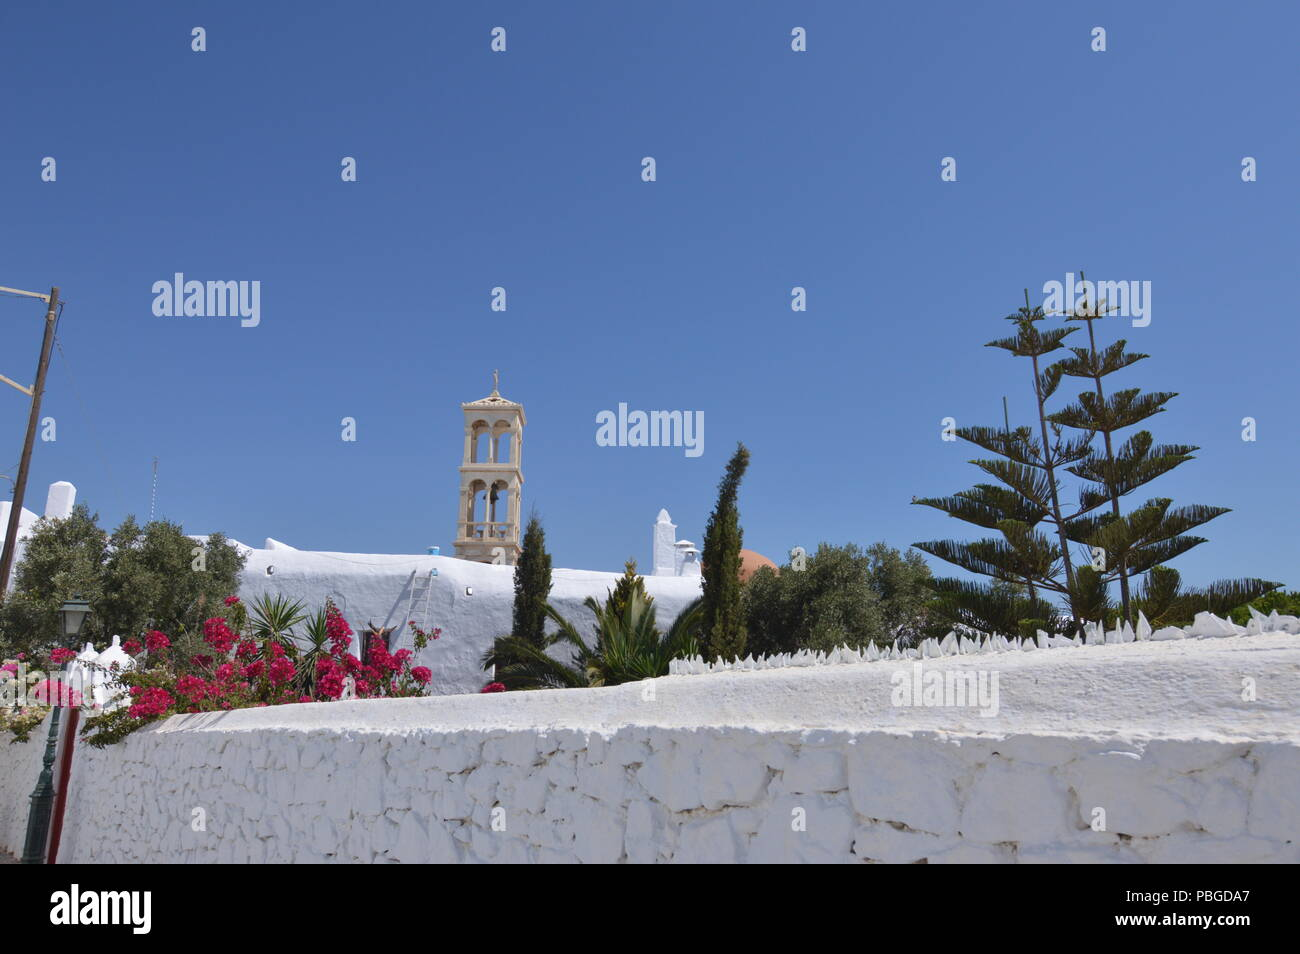 Courtyard And Bell Tower Of Panagia Tourliani Monastery In Ano Mera On The Island Of Mykonos. Architecture Landscapes Travels Cruises. July 3, 2018. A Stock Photo